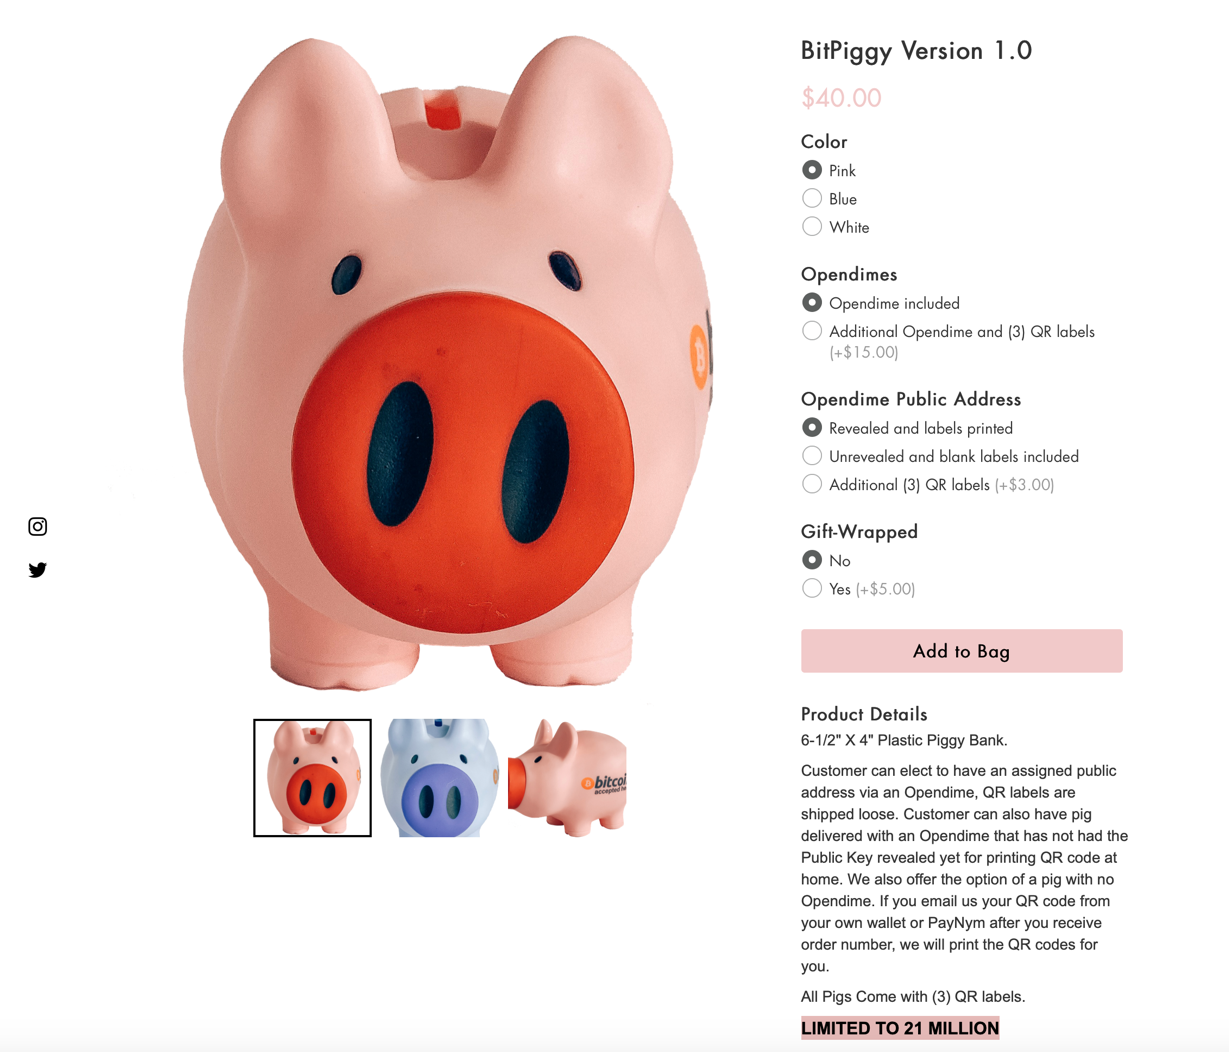 BitPiggys Helps Children Stack Satoshis and Learn Financial Responsibility